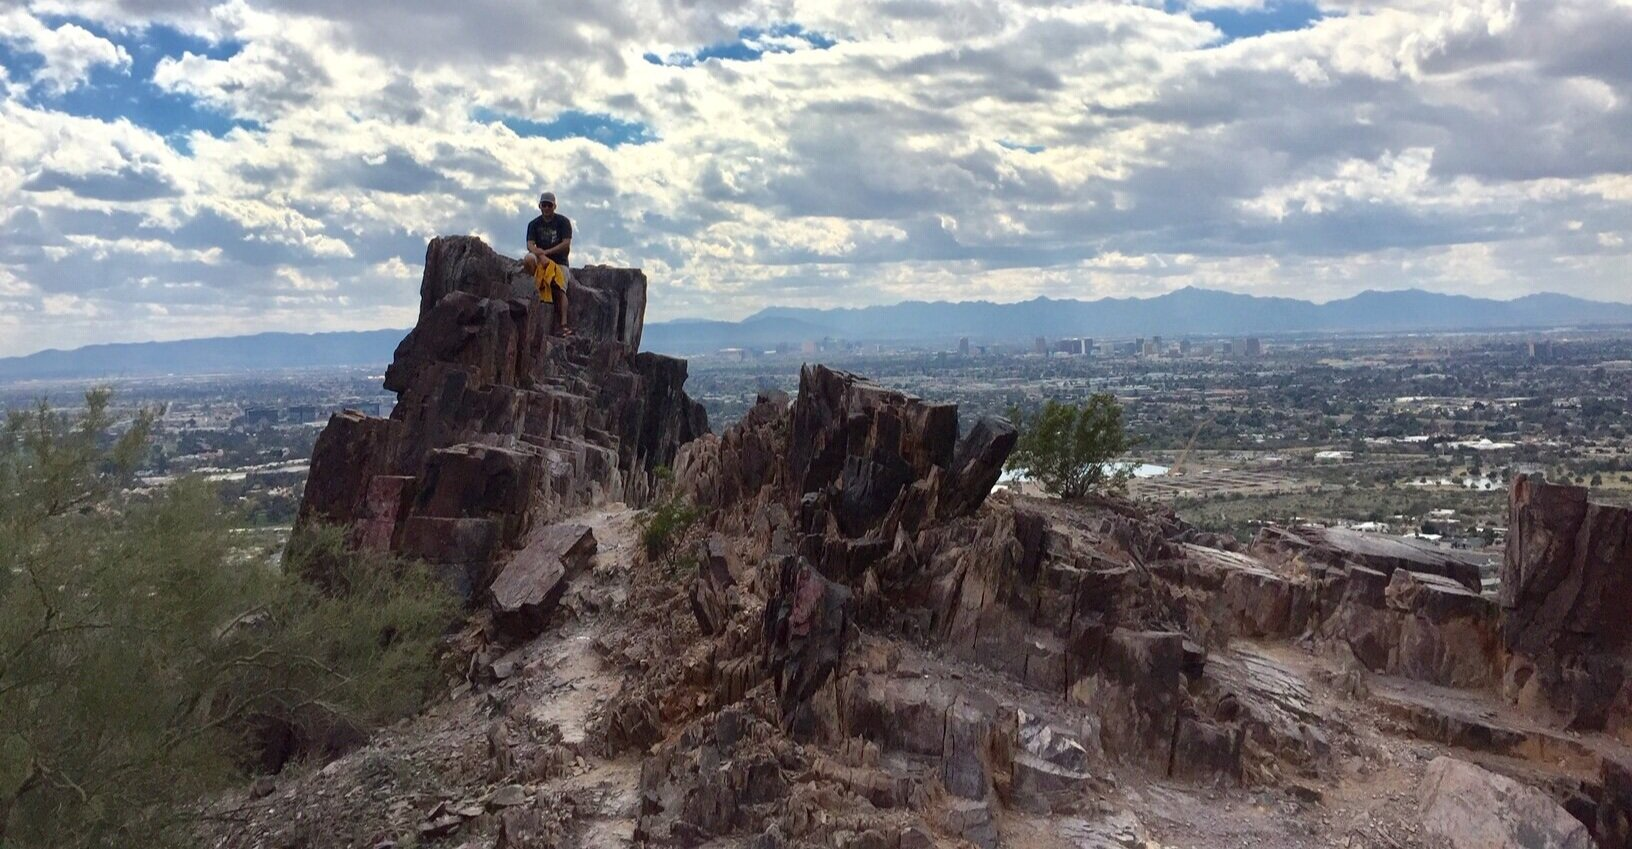 PIESTEWA PEAK  Summit Trail, Phoenix, AZ 85016 8.10 mi / 13.04 km from property